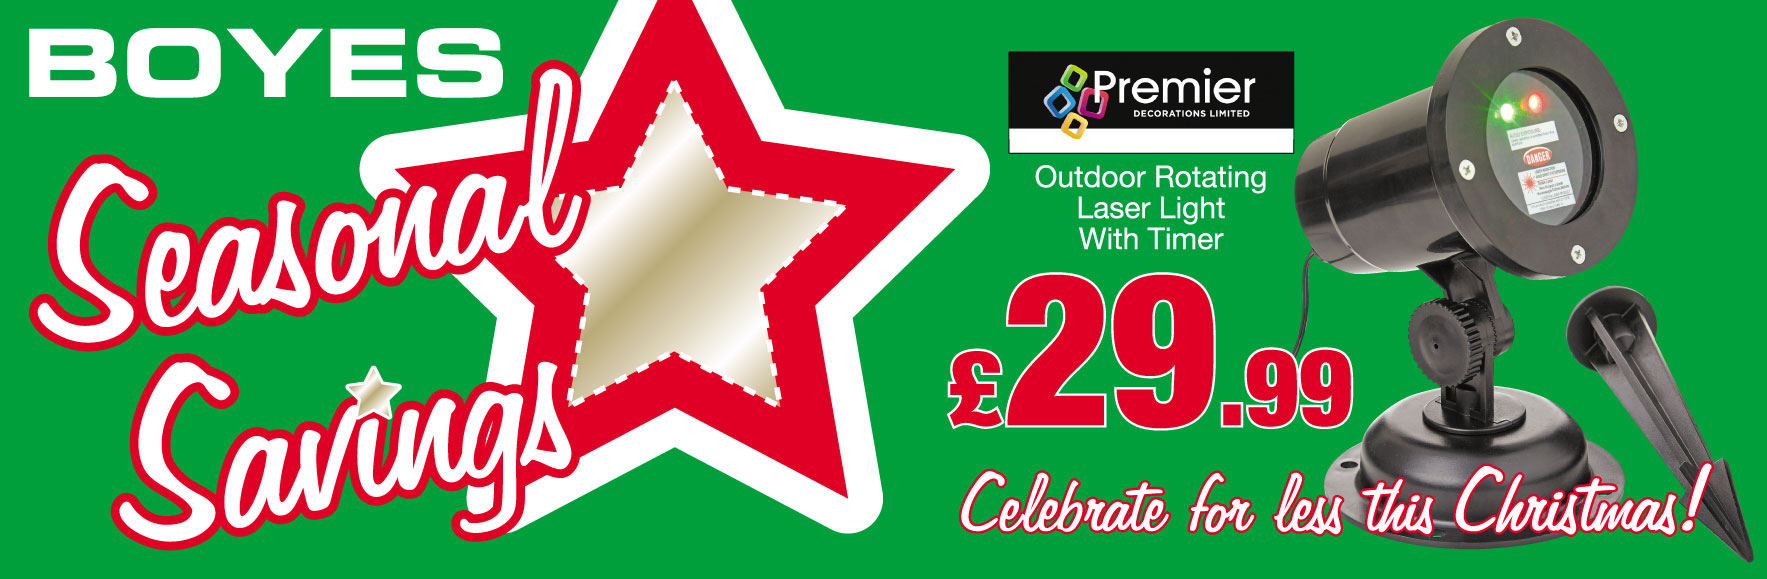 Premier Outdoor Rotating Laser Light With Timer Only £29.99